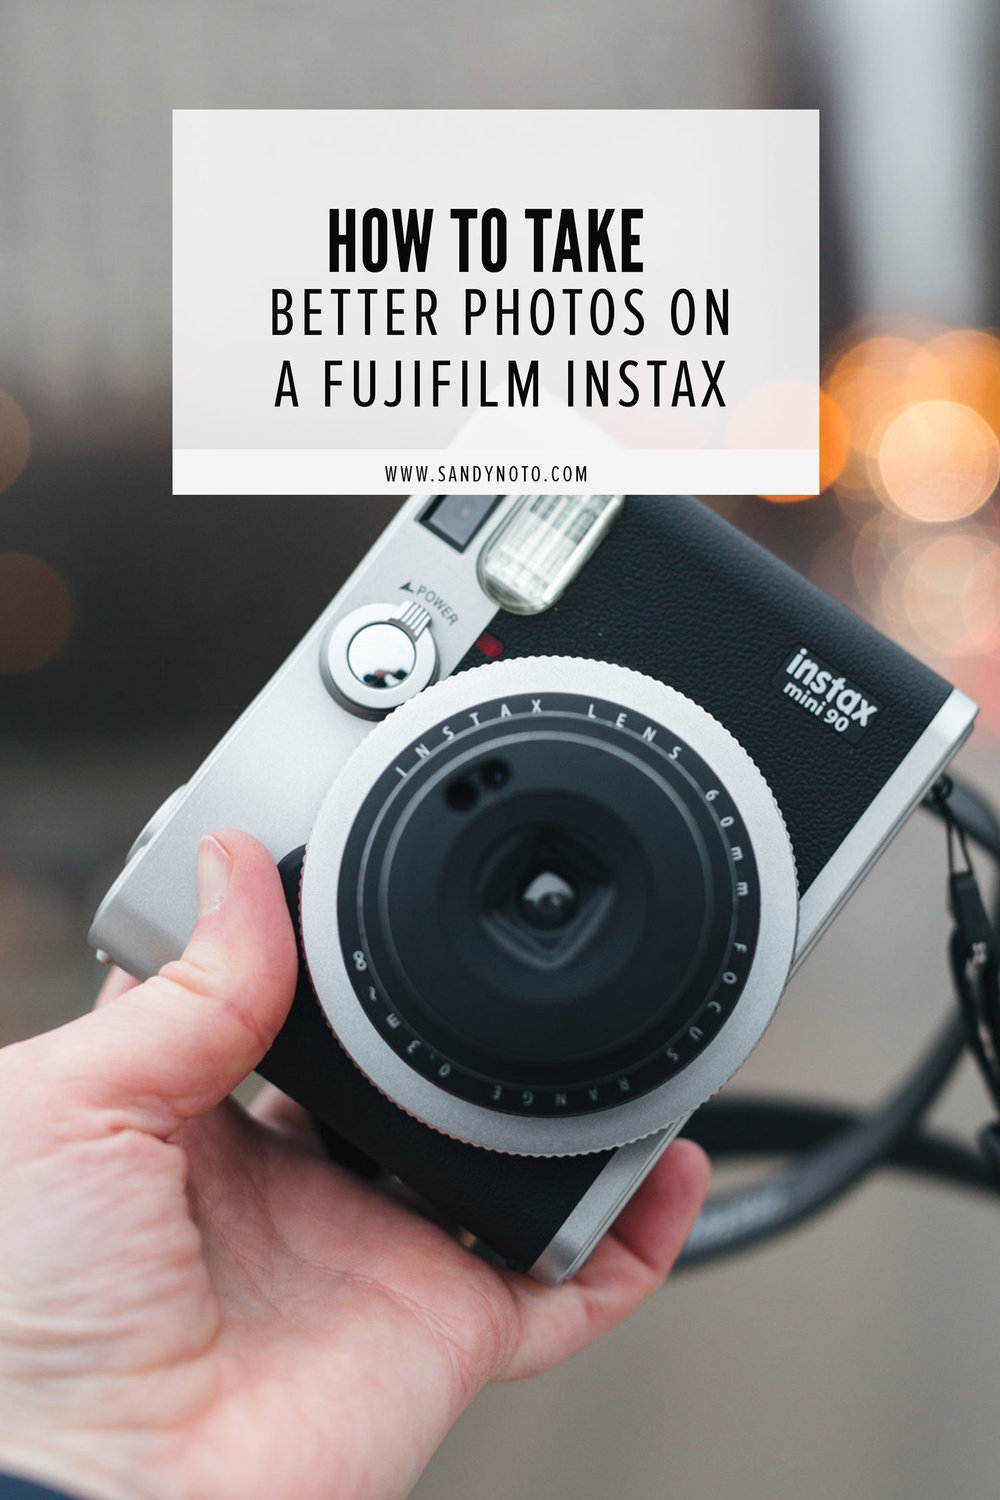 How to take better photos with a Fujifilm Instax